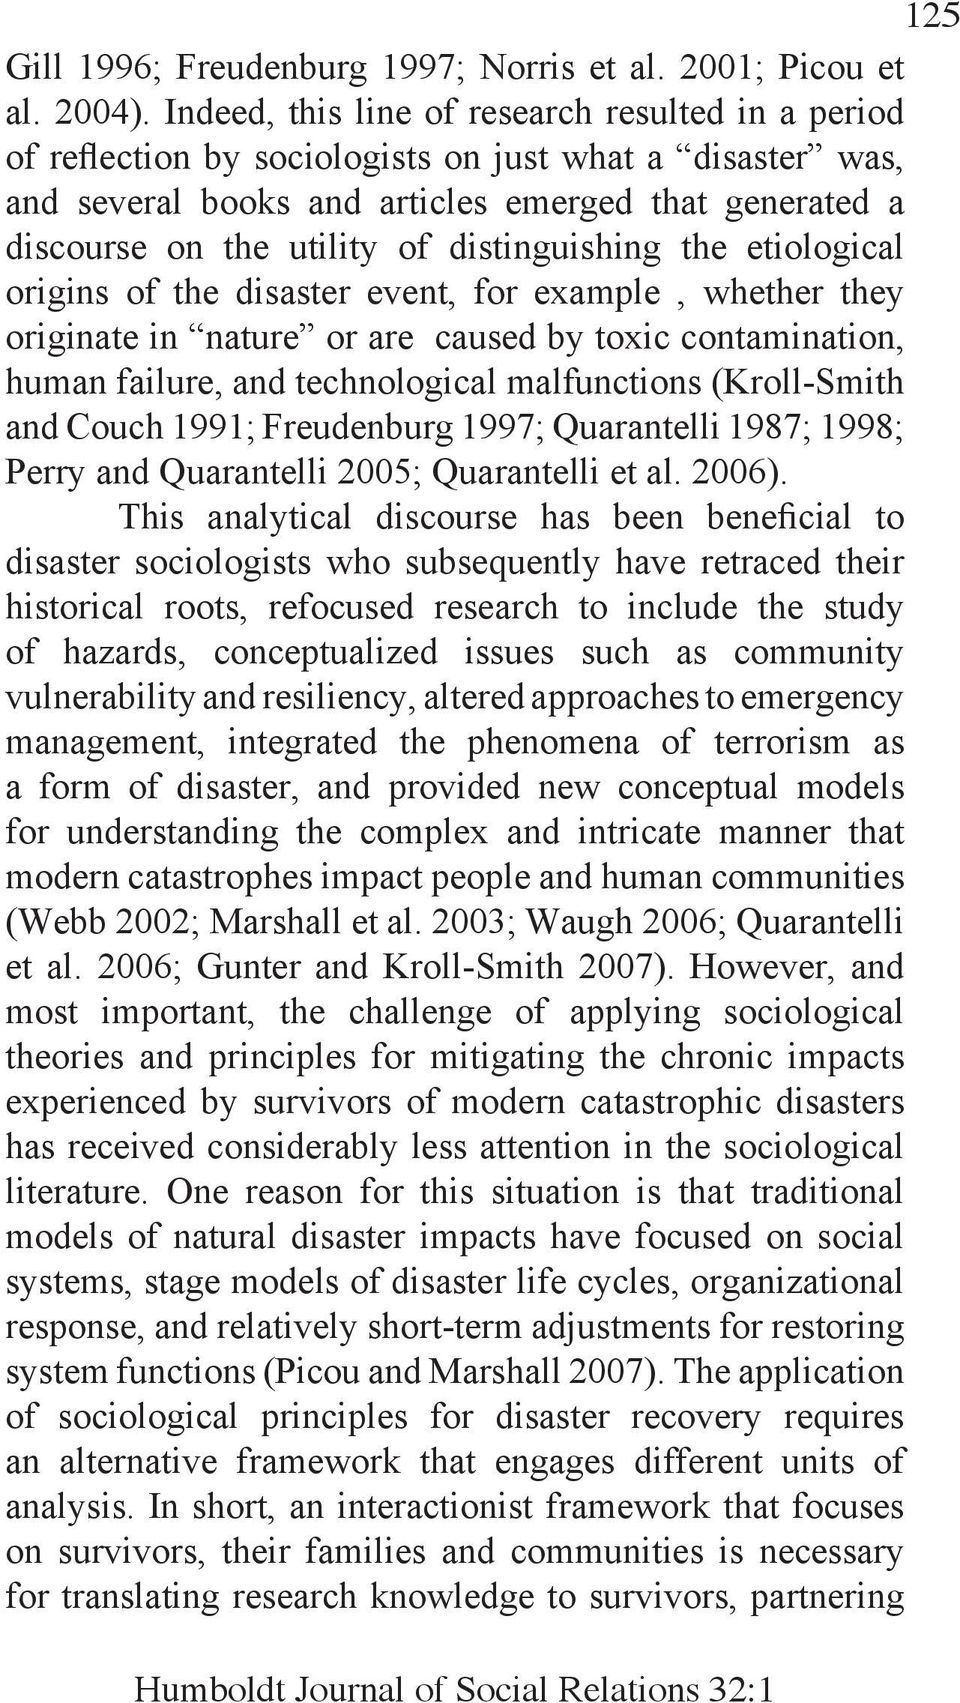 distinguishing the etiological origins of the disaster event, for example, whether they originate in nature or are caused by toxic contamination, human failure, and technological malfunctions